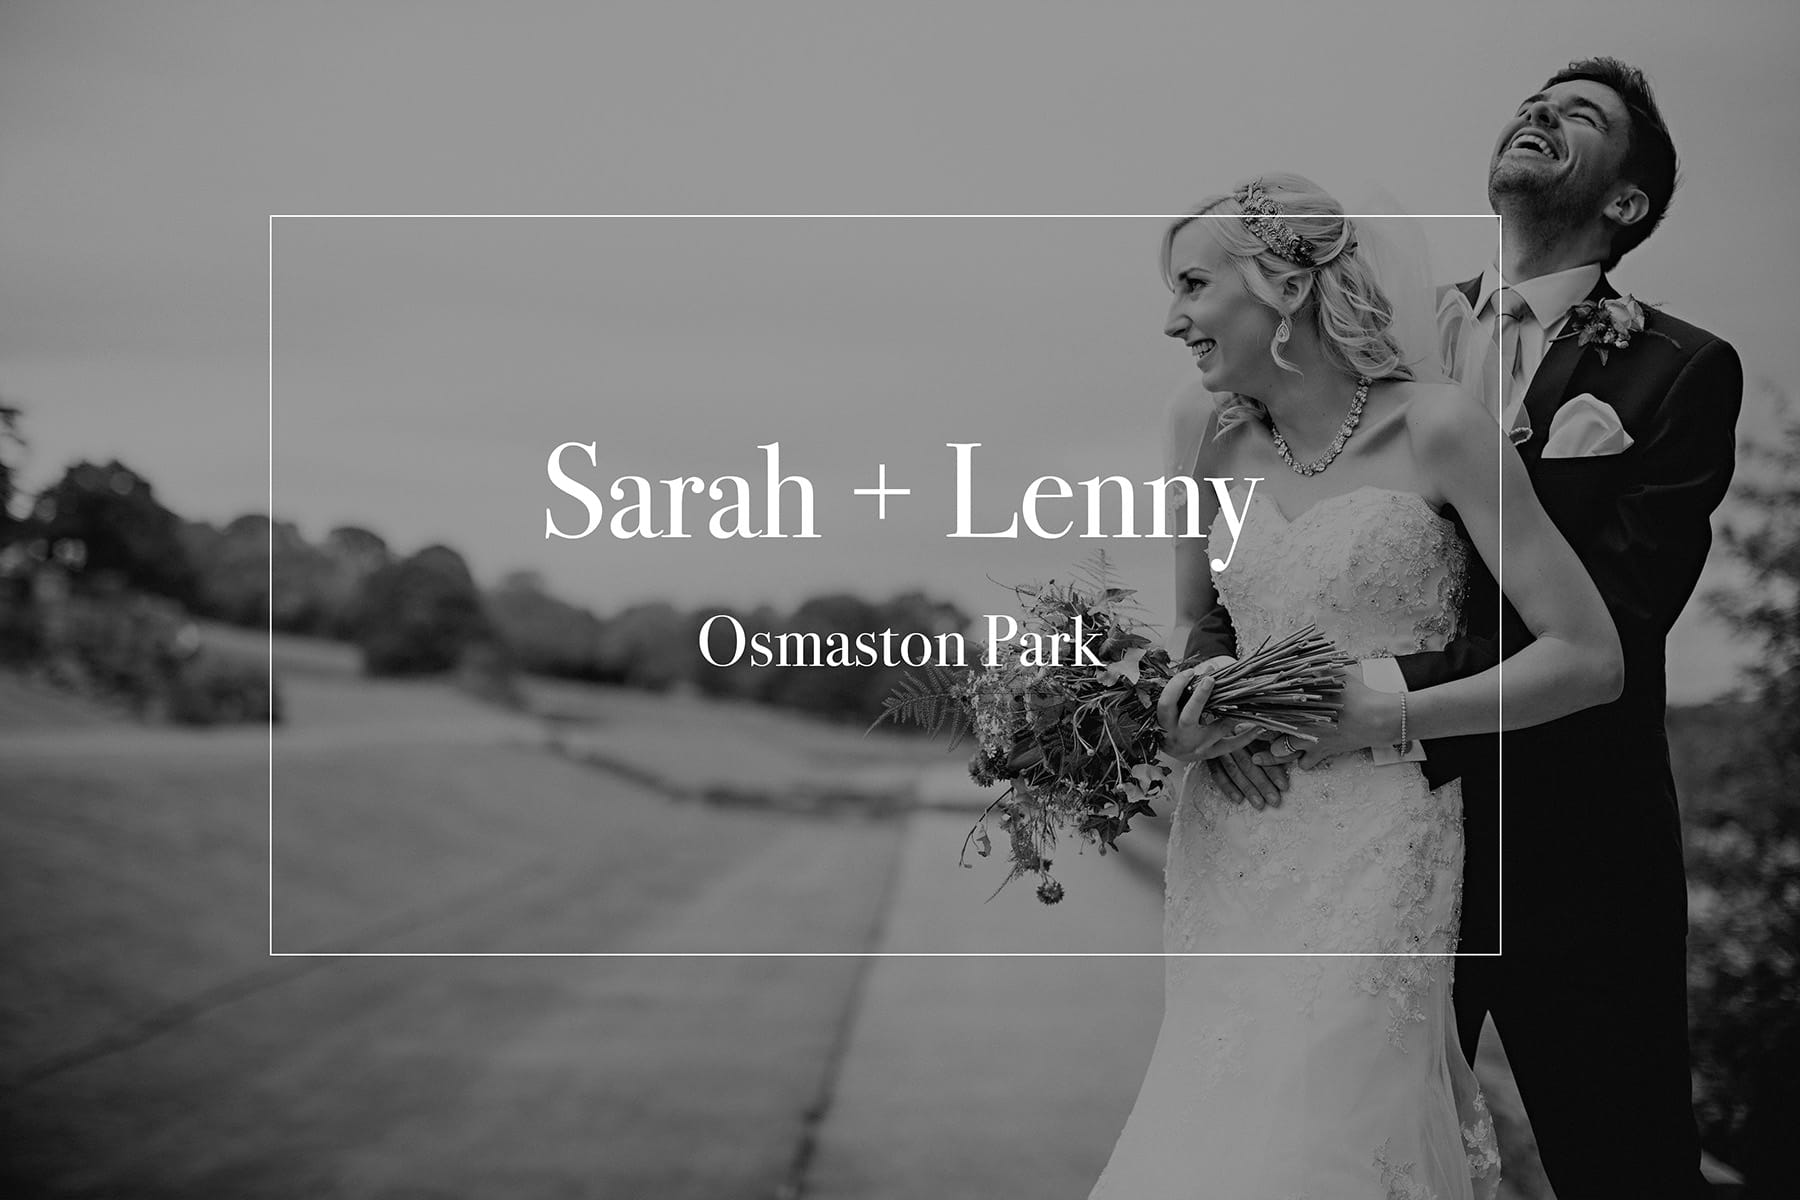 The bride and groom in black and white stood laughing at Osmaston Park in Derbyshire